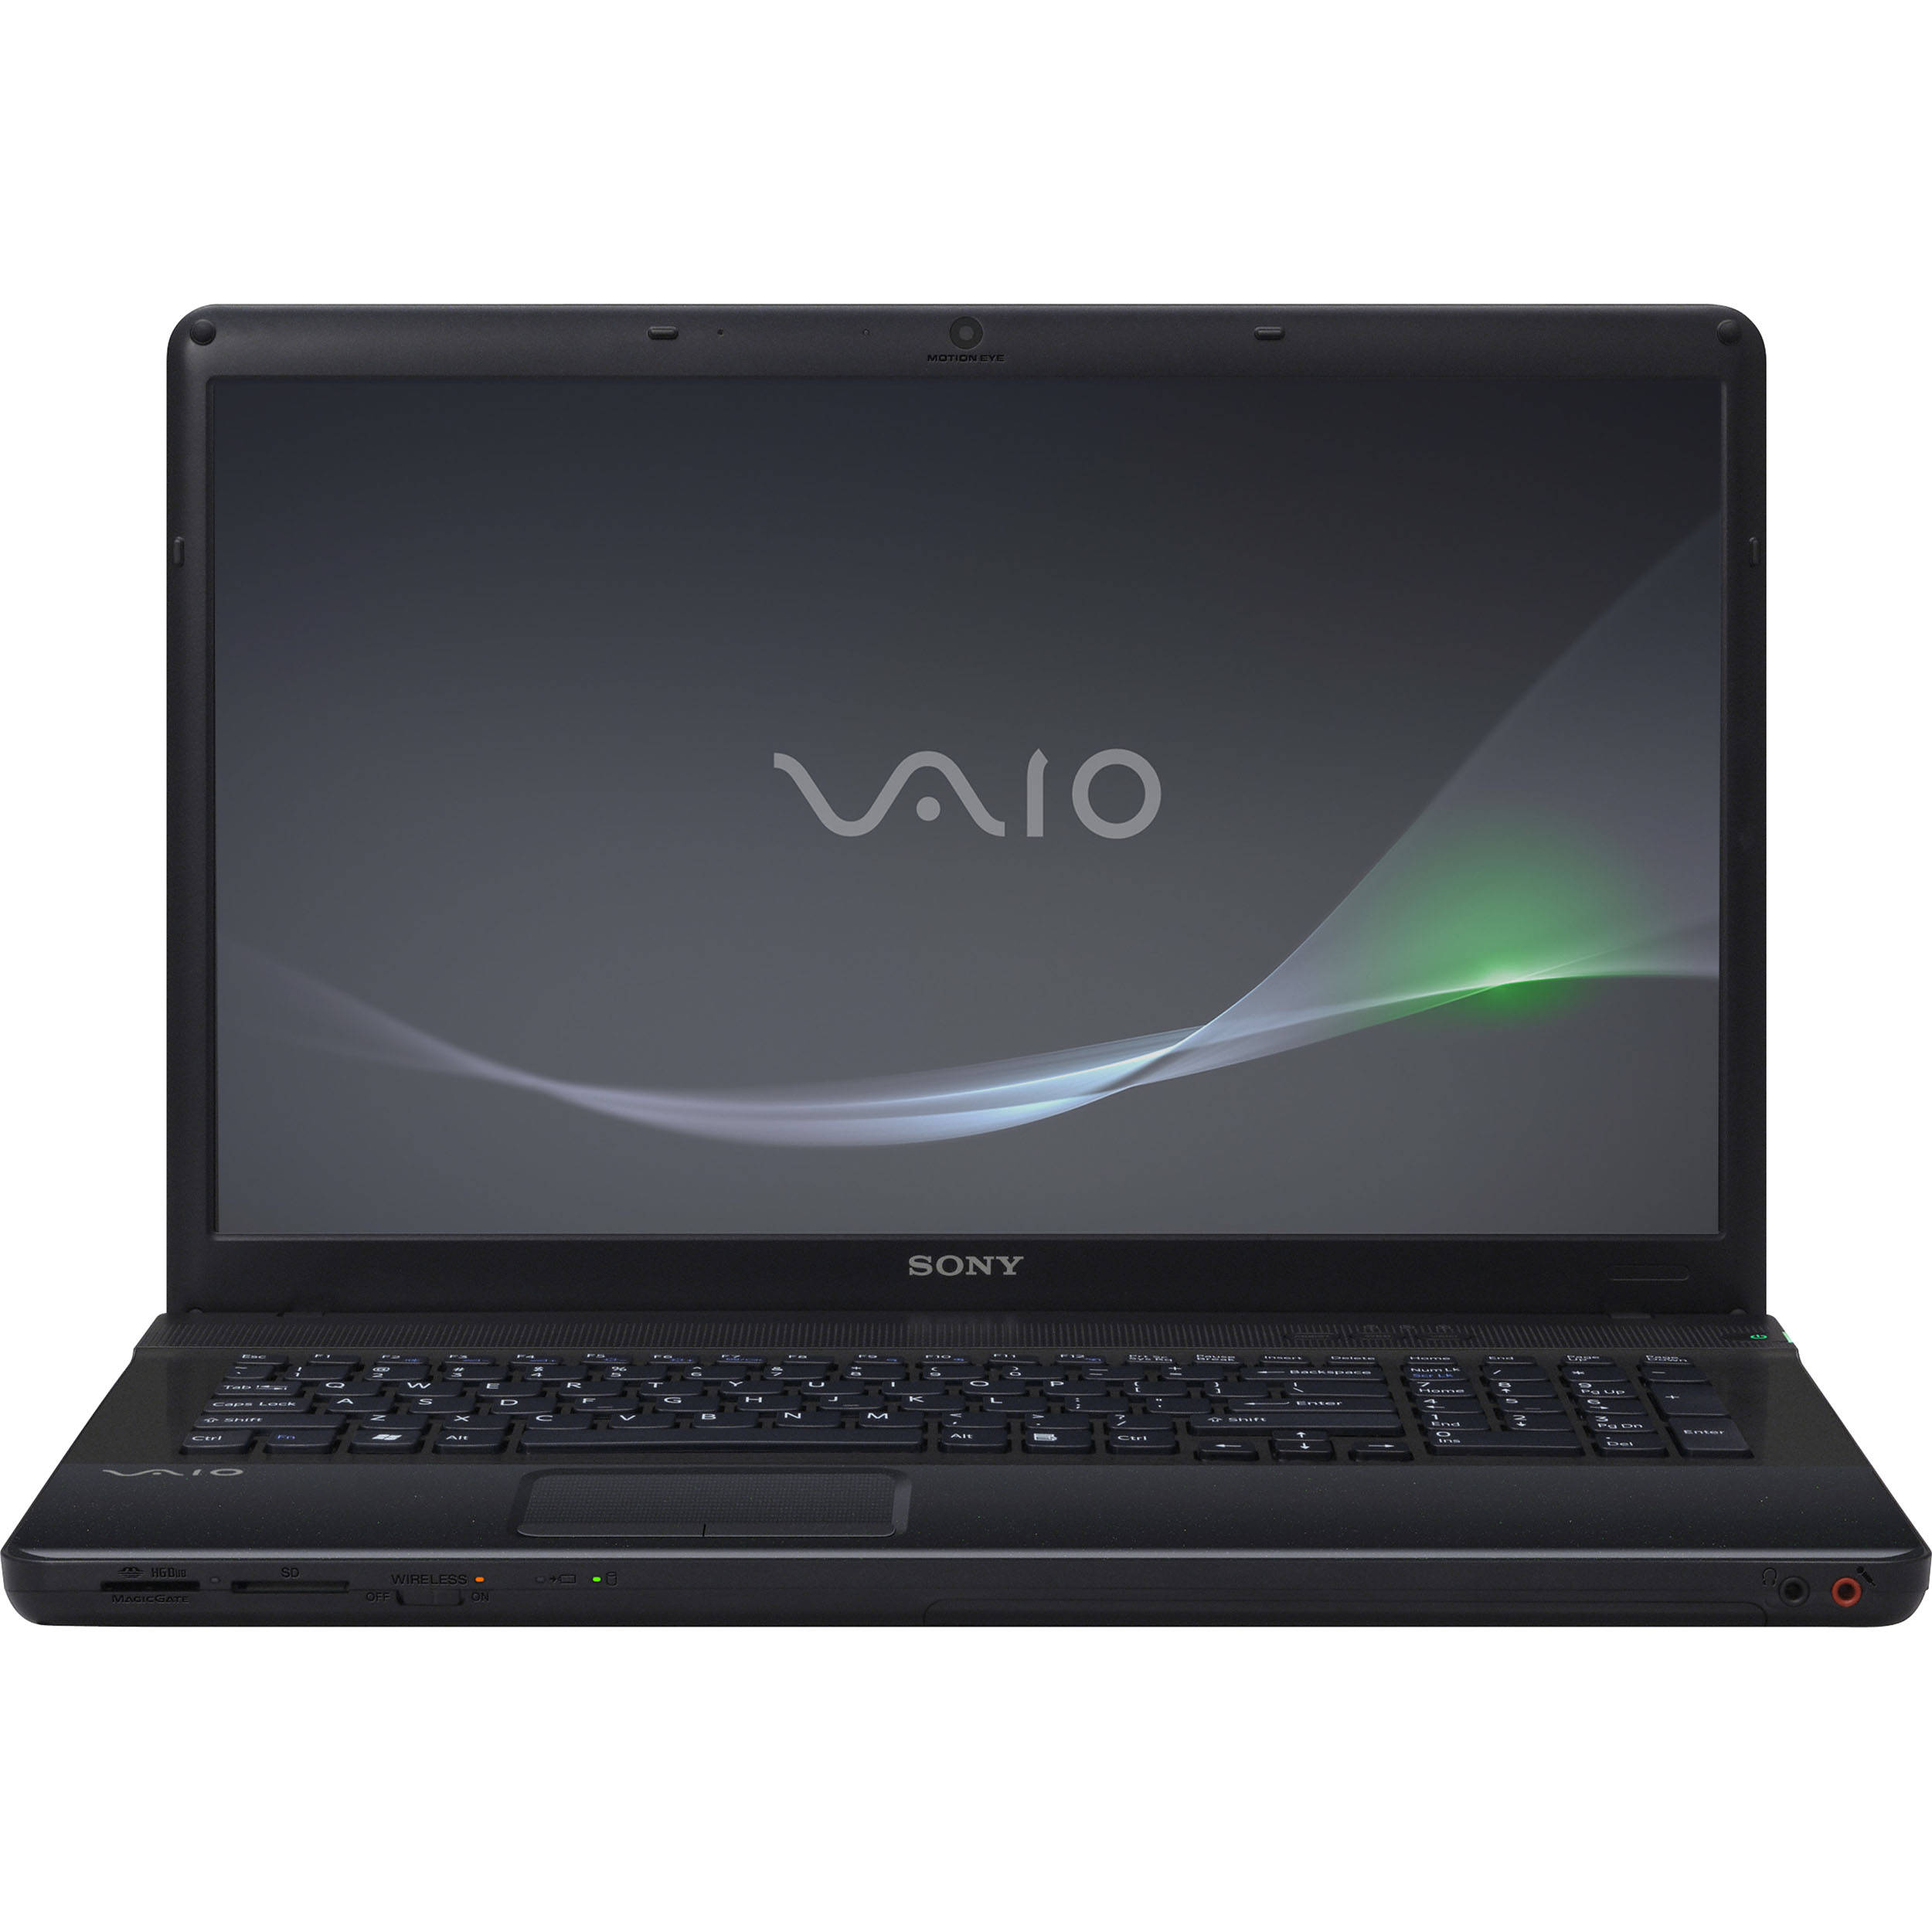 Sony Vaio VPCEC22FX Broadcom Bluetooth Driver Windows